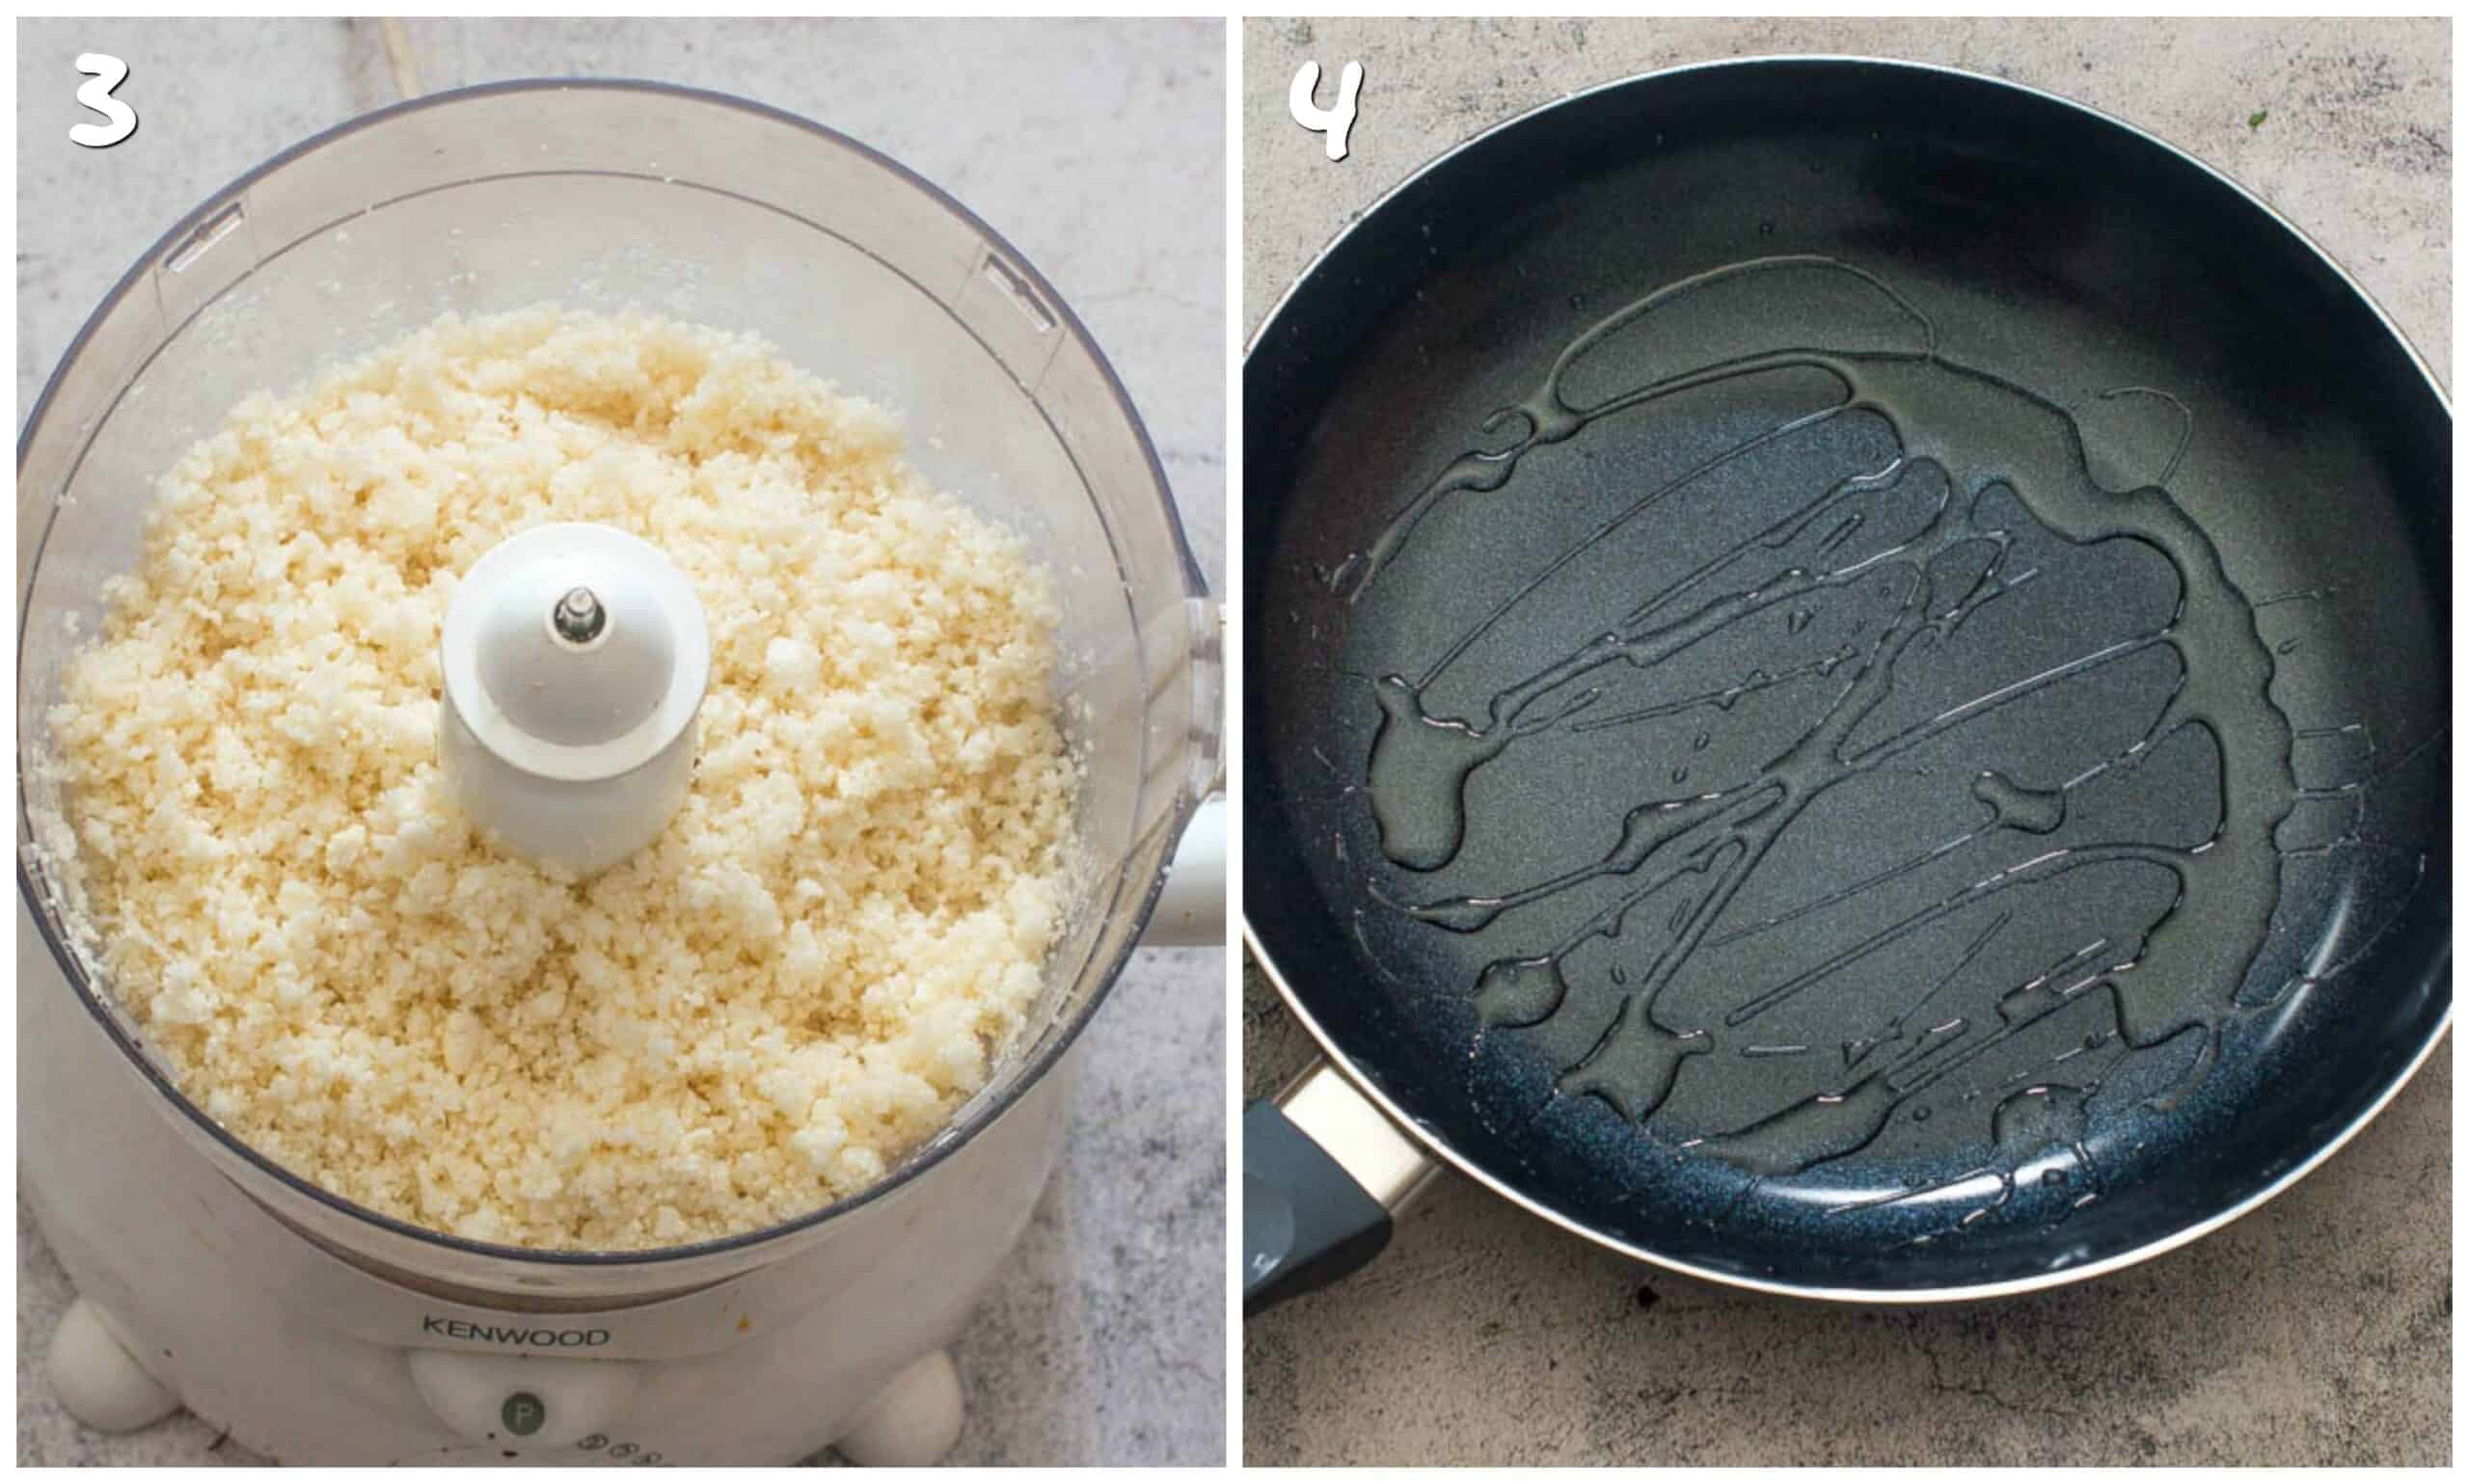 Steps 3-4 pulsing the rice and heating the skillet